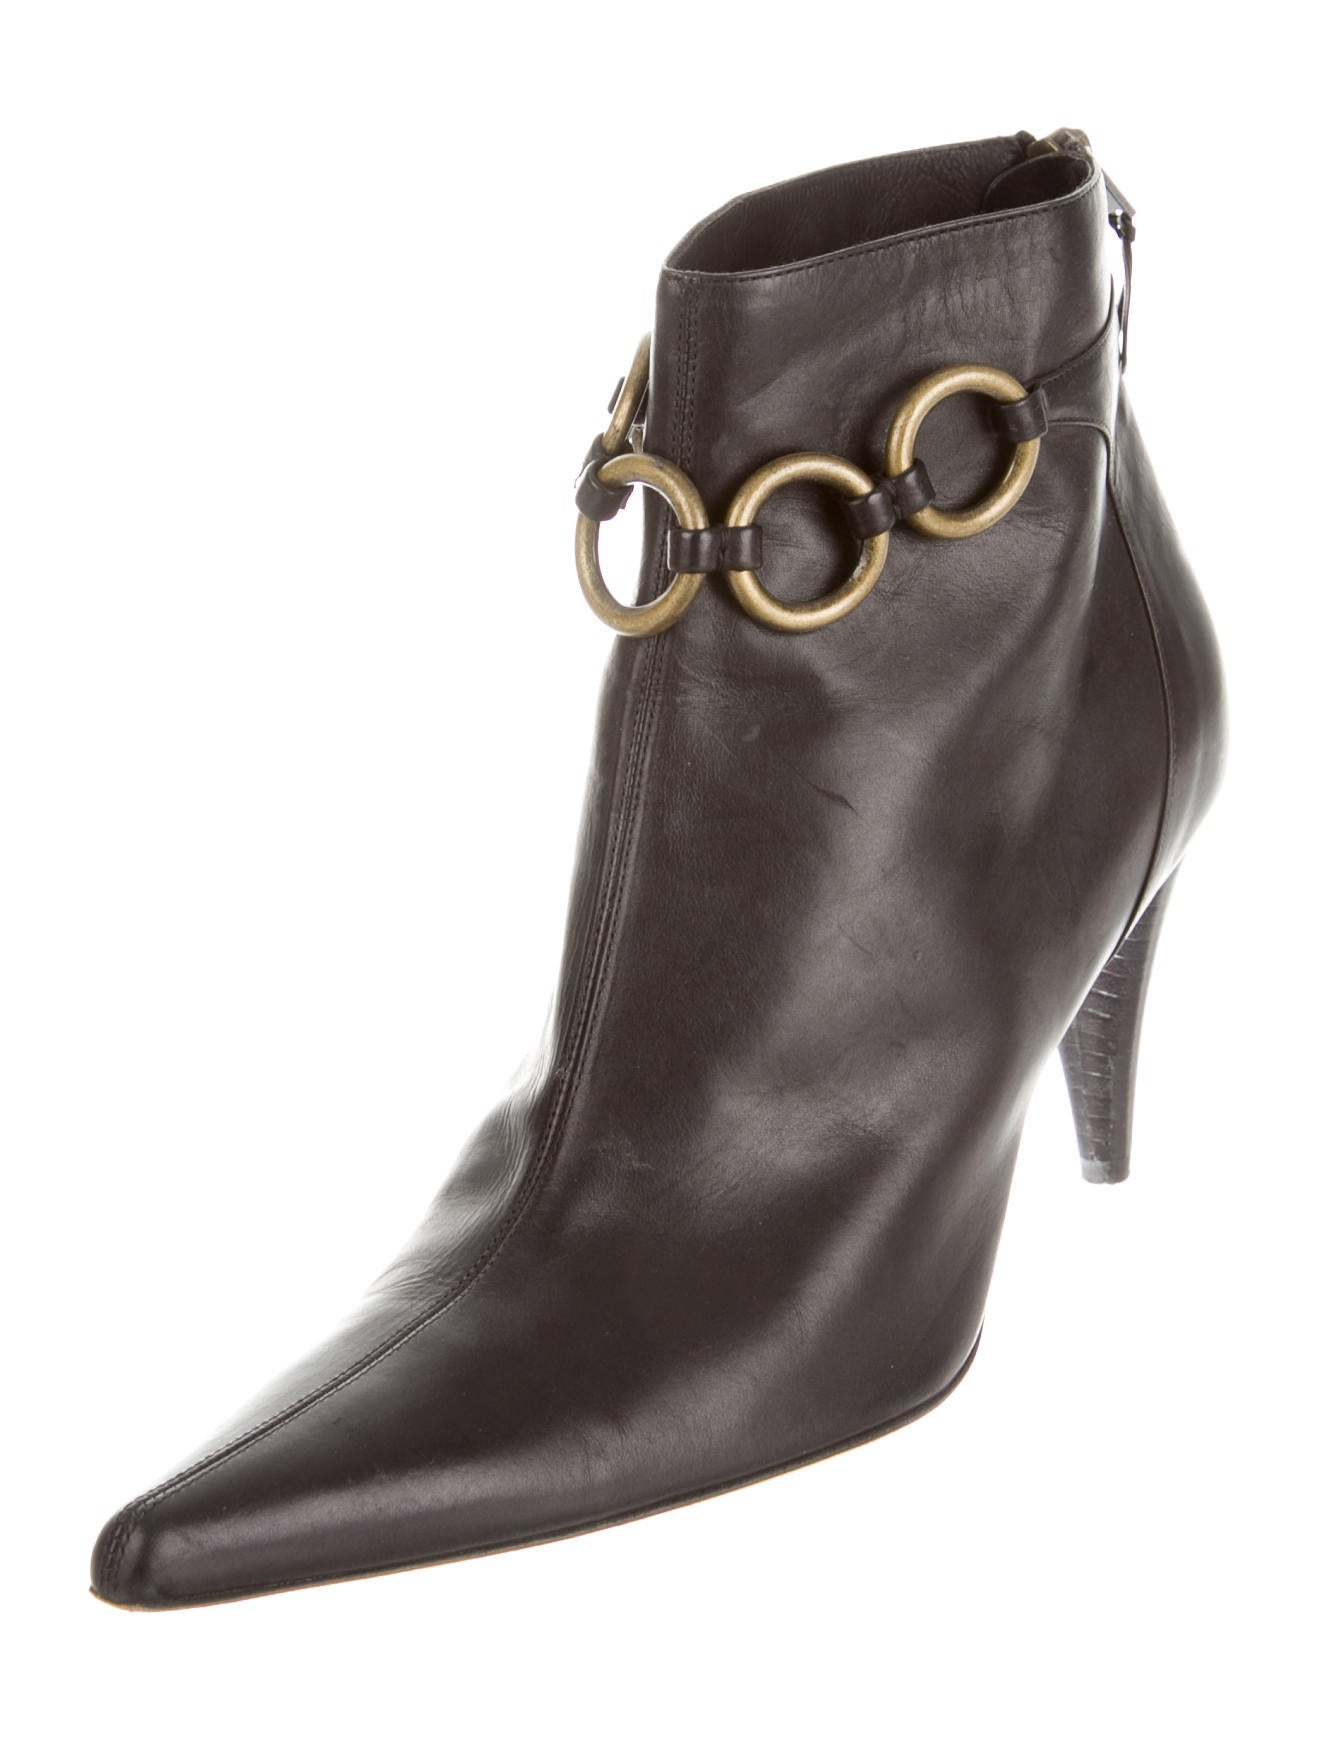 michael kors leather pointed toe booties shoes